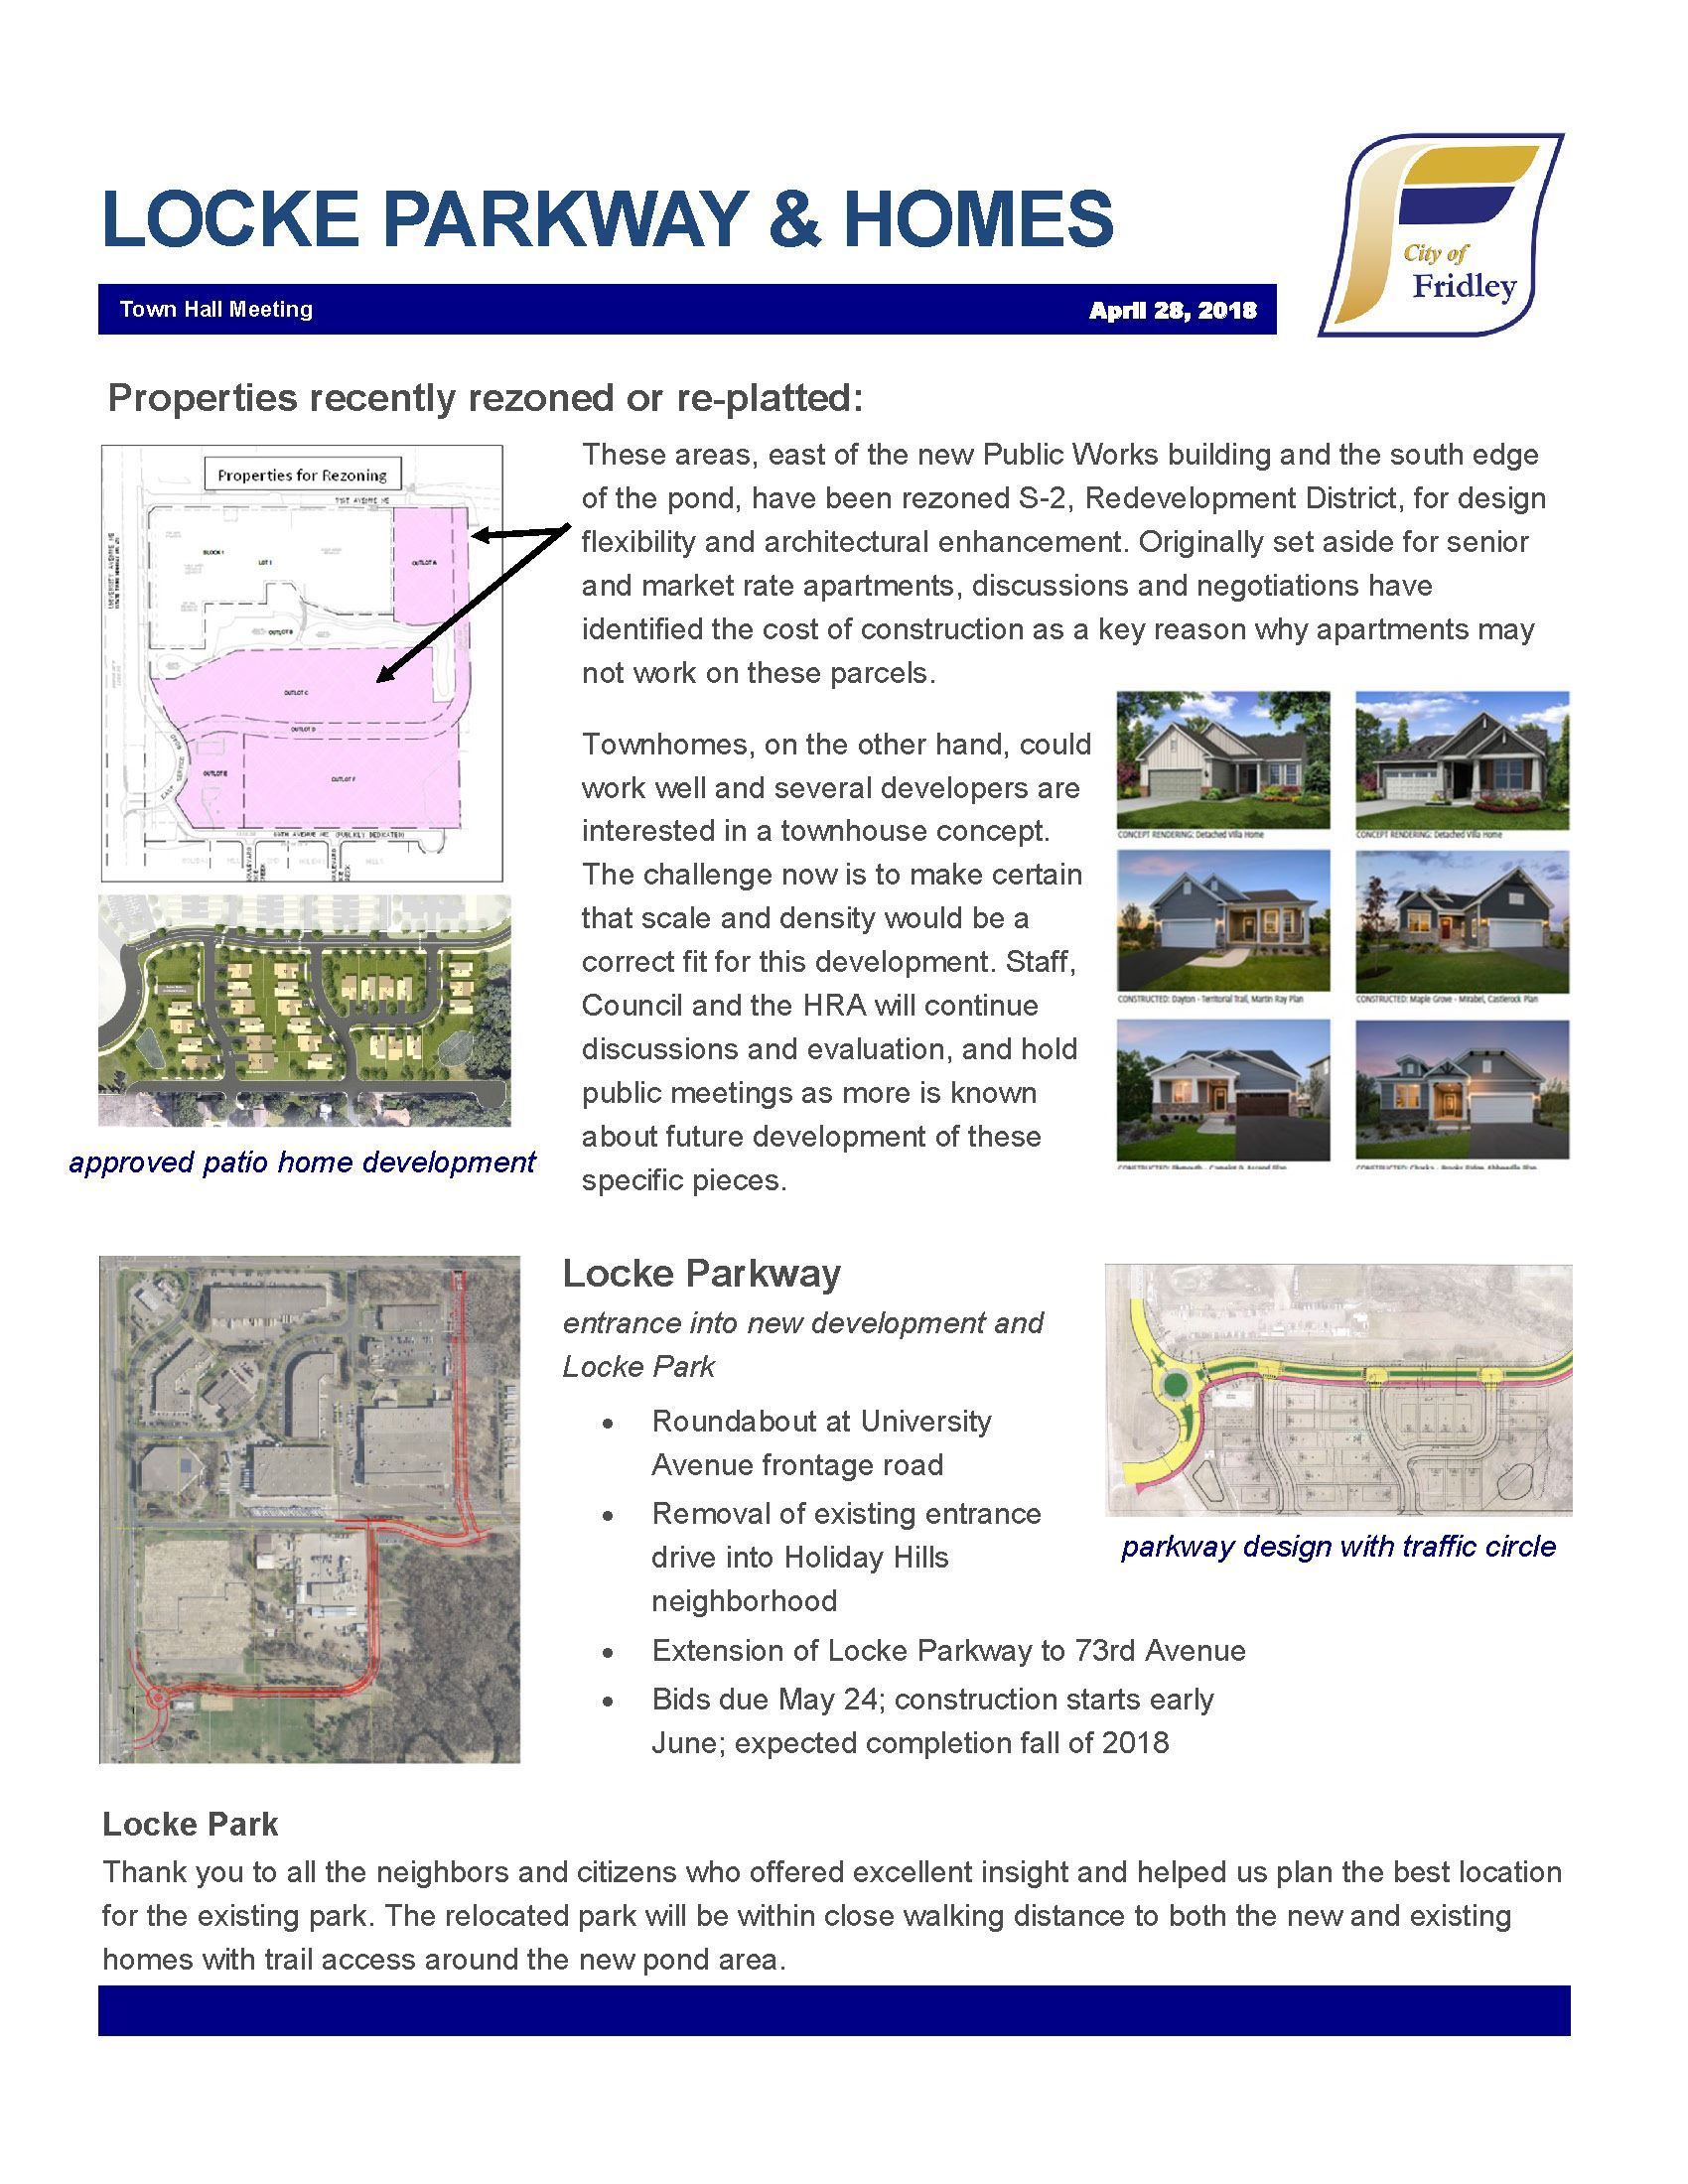 zoning update for the area surrounding Locke Pointe Park